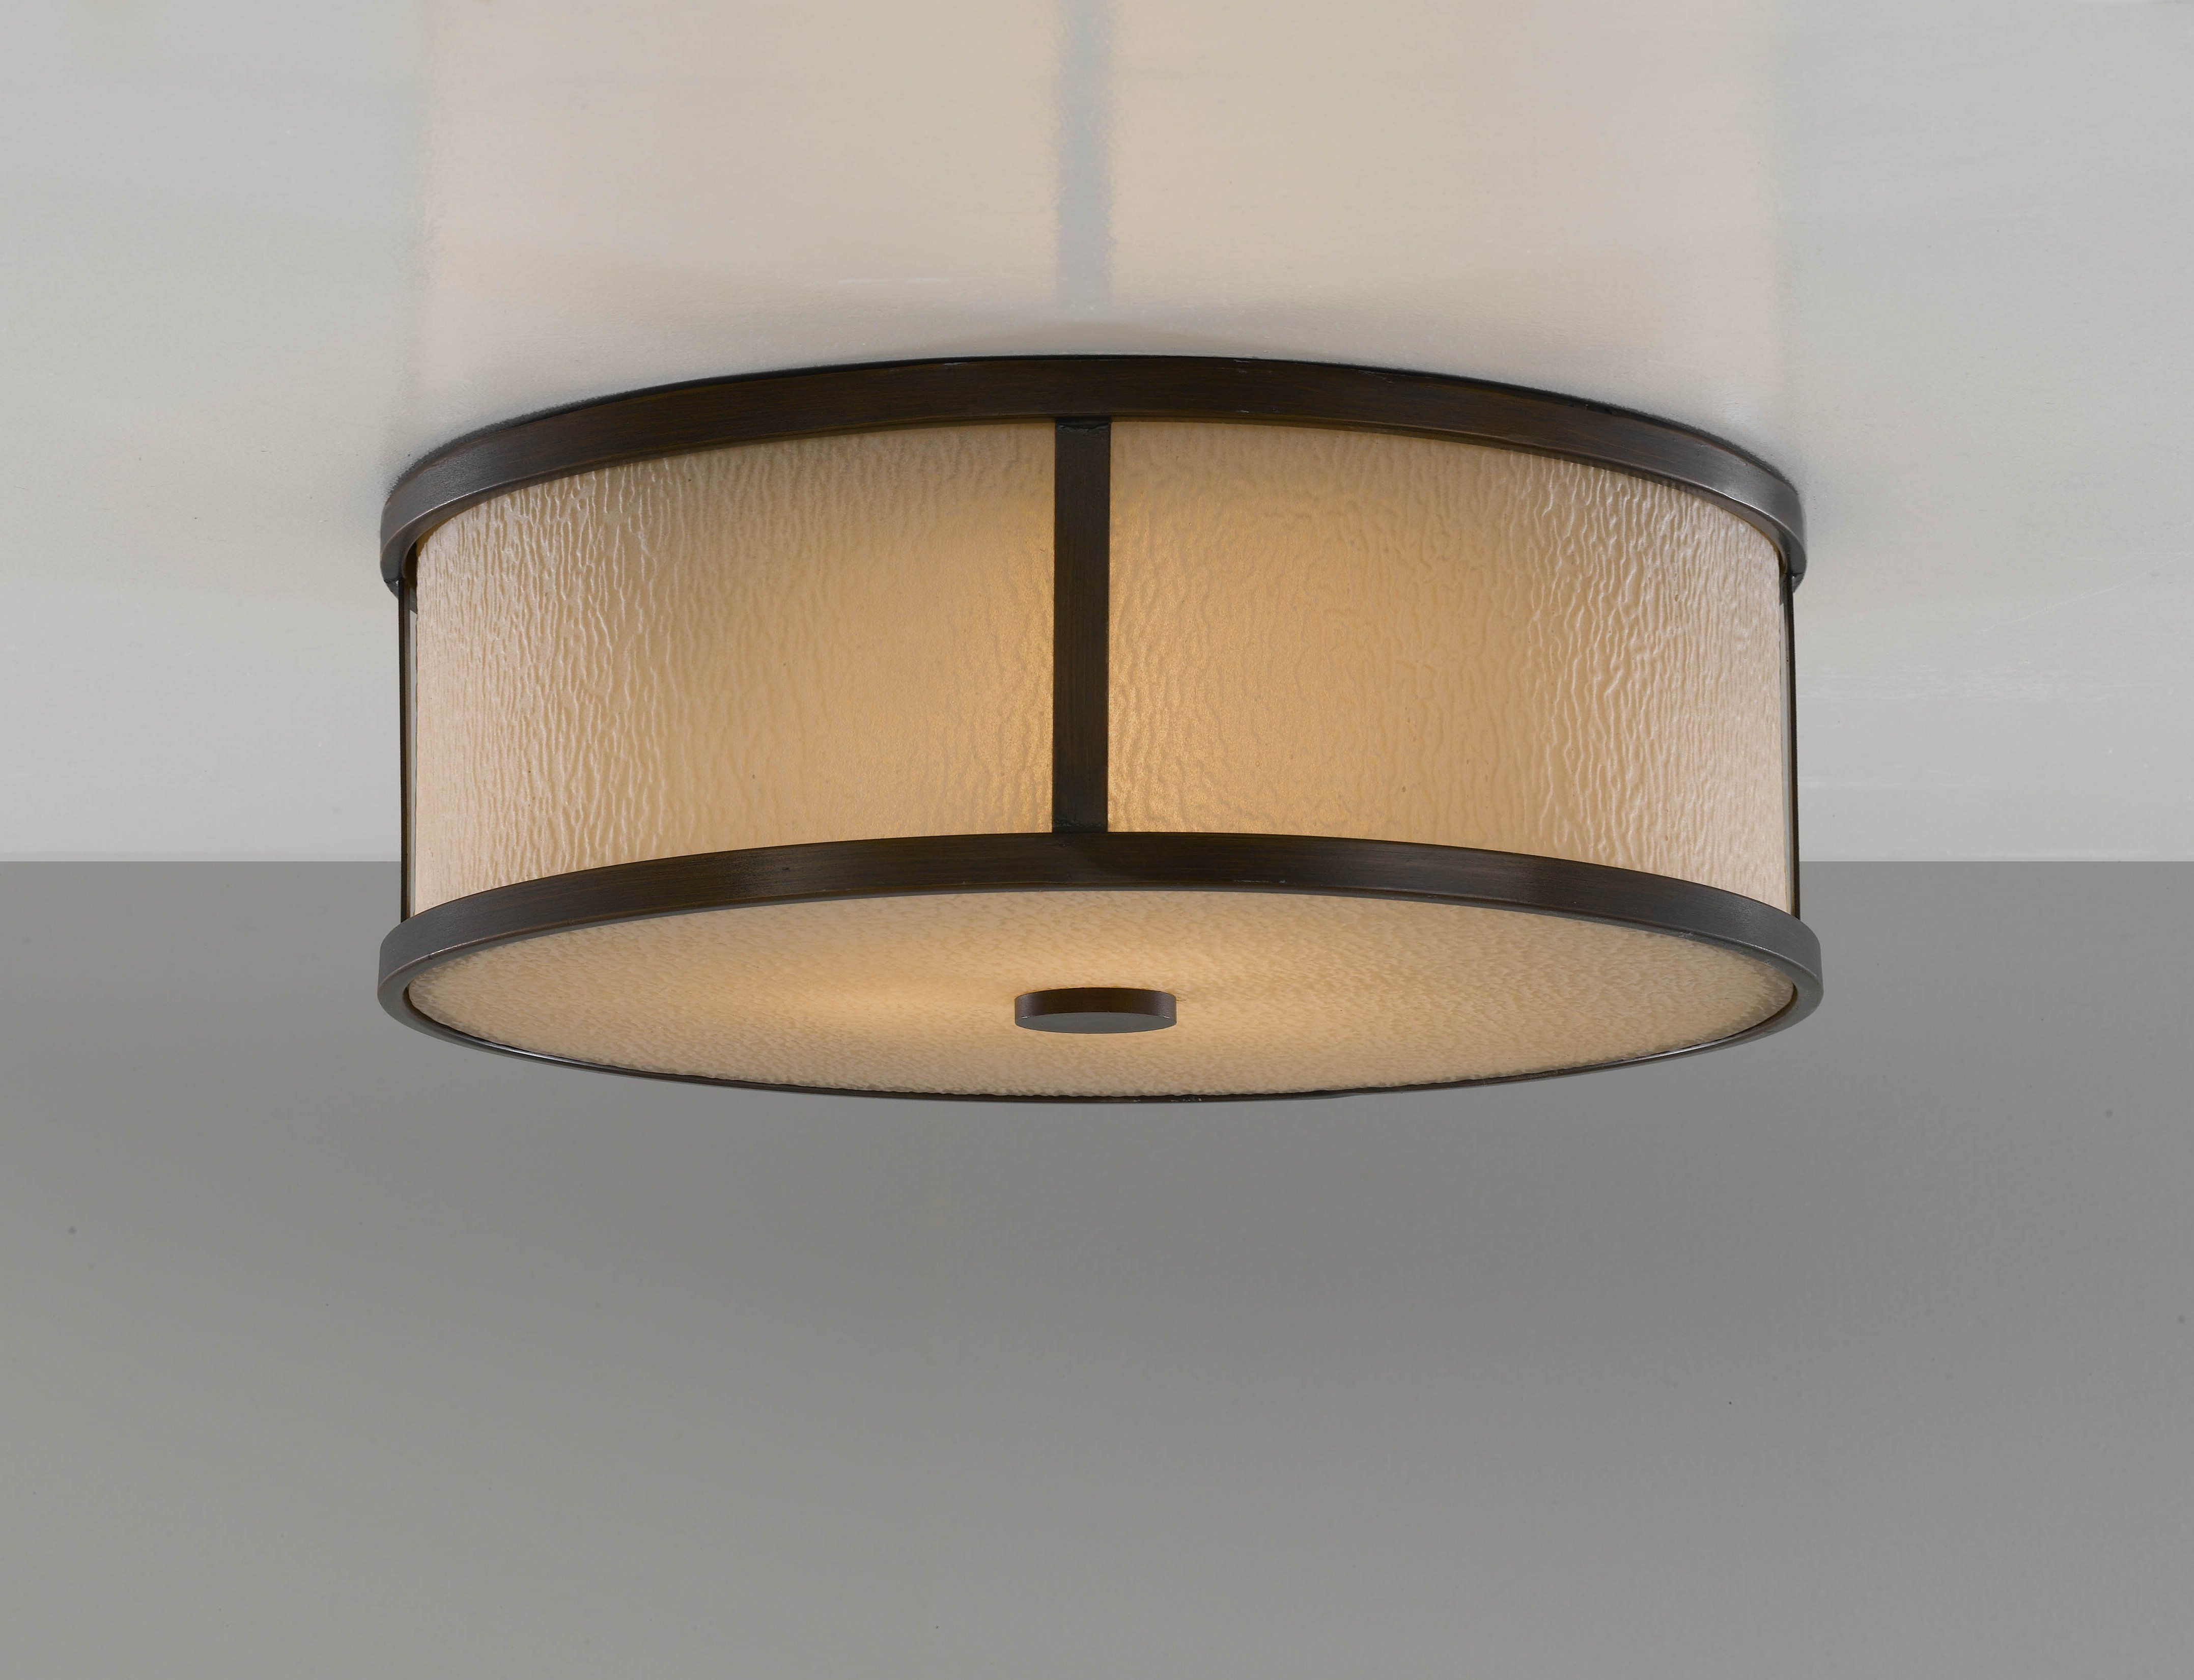 1000 images about ceiling mount light fixtures on pinterest flush mount ceiling light fixtures and contemporary ceiling lighting ceiling lighting fixtures